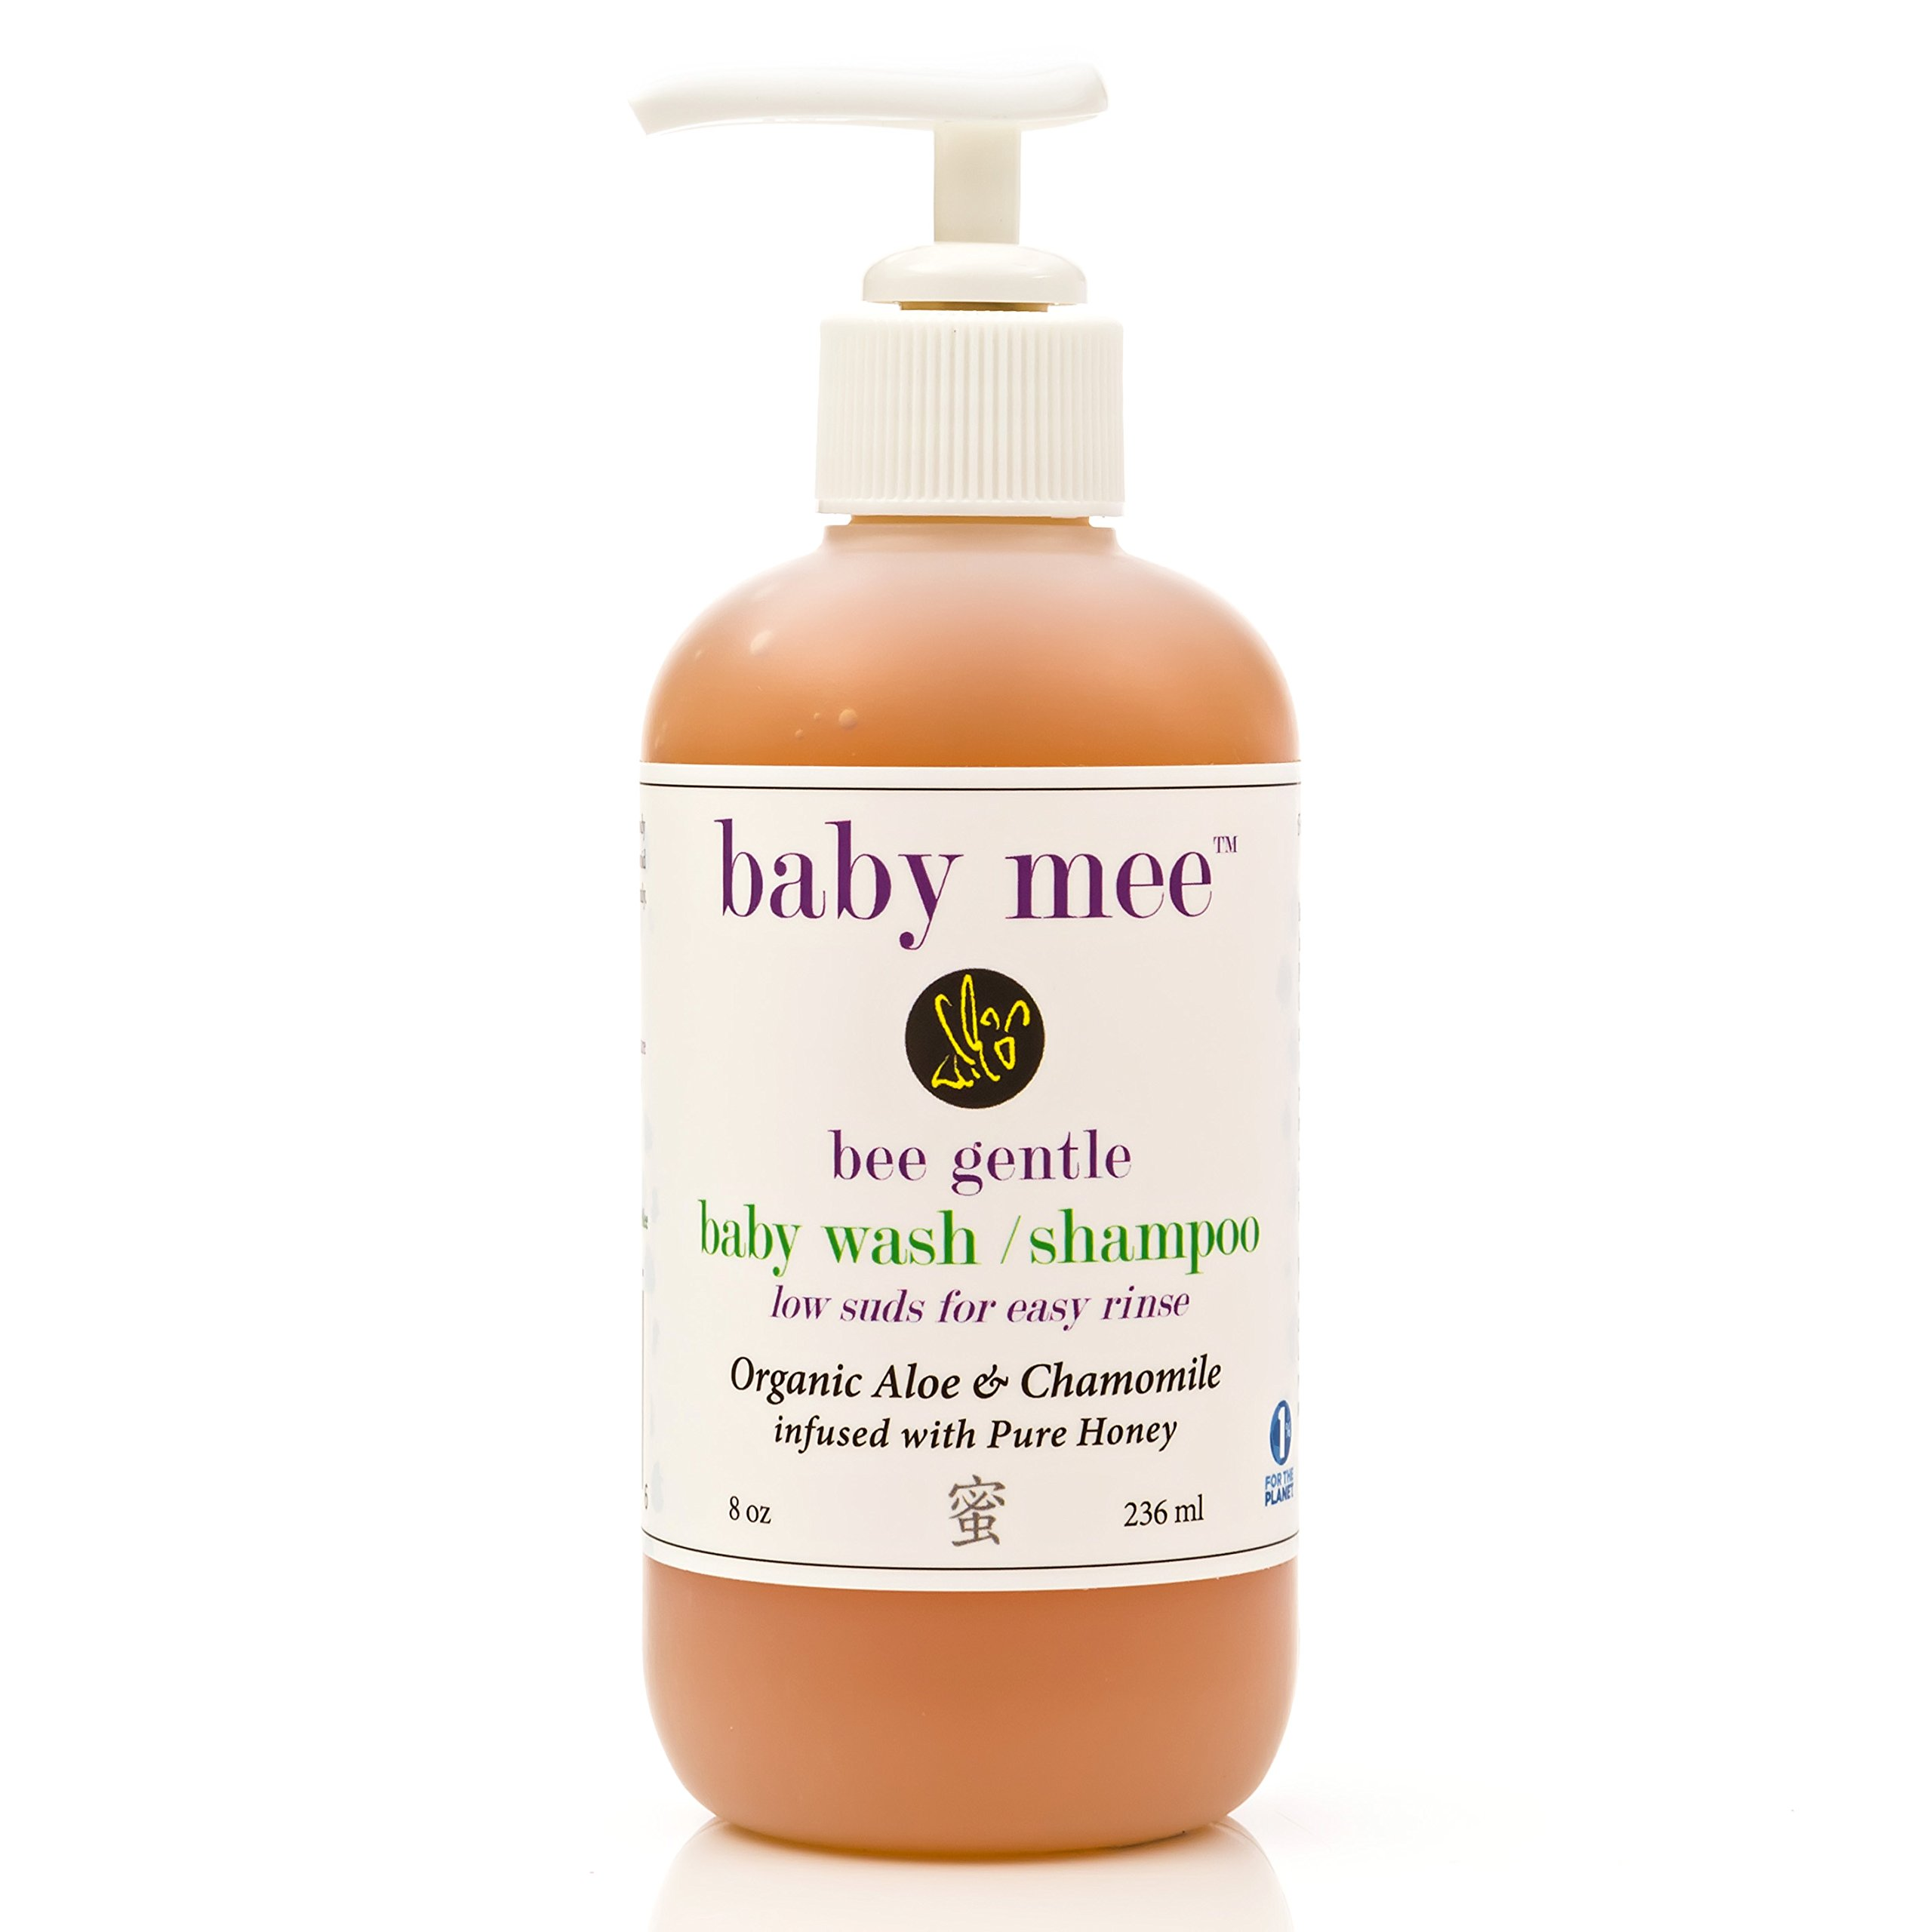 Kids Shampoo & Body Wash - Organic Aloe, Chamomile & Natural Honey For Soothing Eczema, Cradle Cap, and Dry, Itchy, Sensitive Skin & Scalp - Tear Free - for Babies, Toddlers & Big Kids